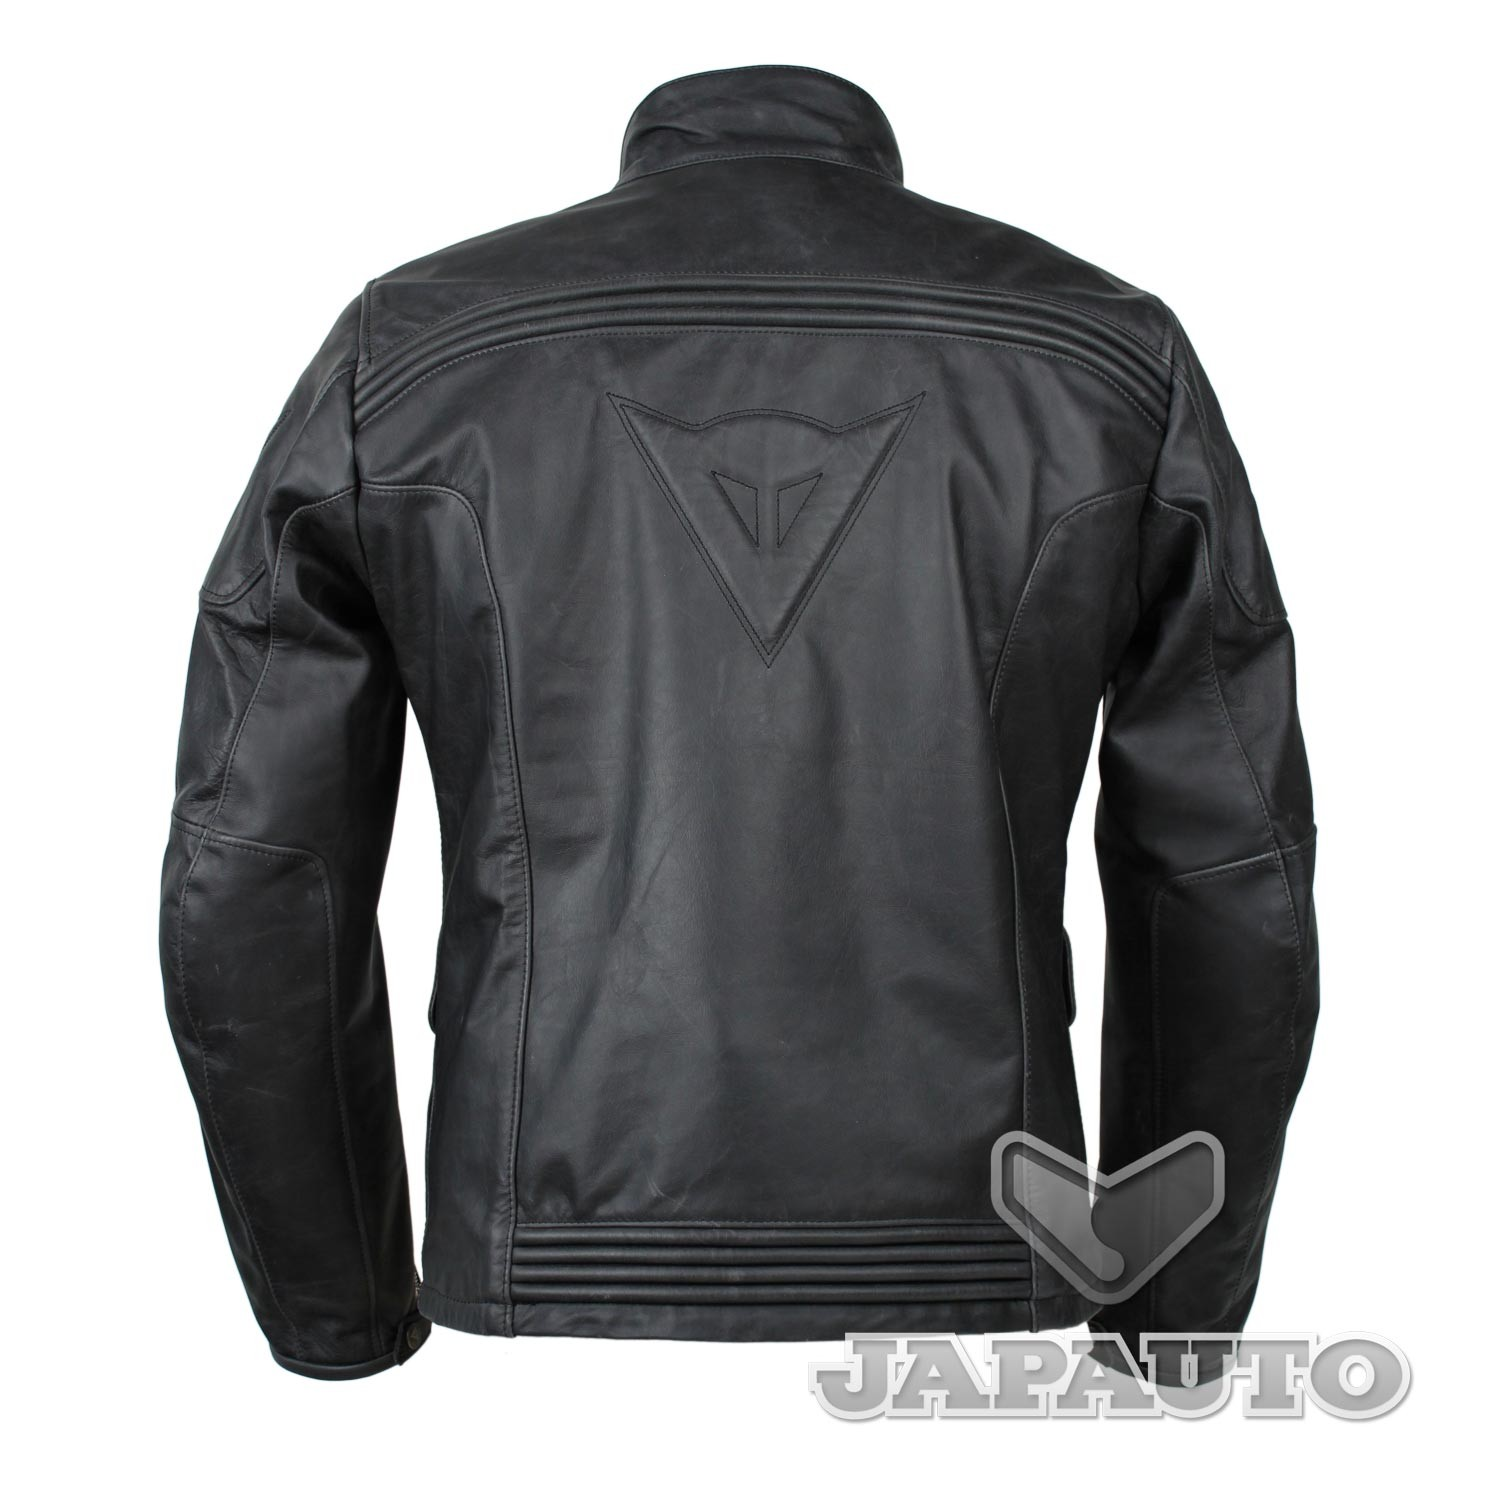 veste cuir dainese maverick nero japauto accessoires equipement pilote pour moto et scooter. Black Bedroom Furniture Sets. Home Design Ideas